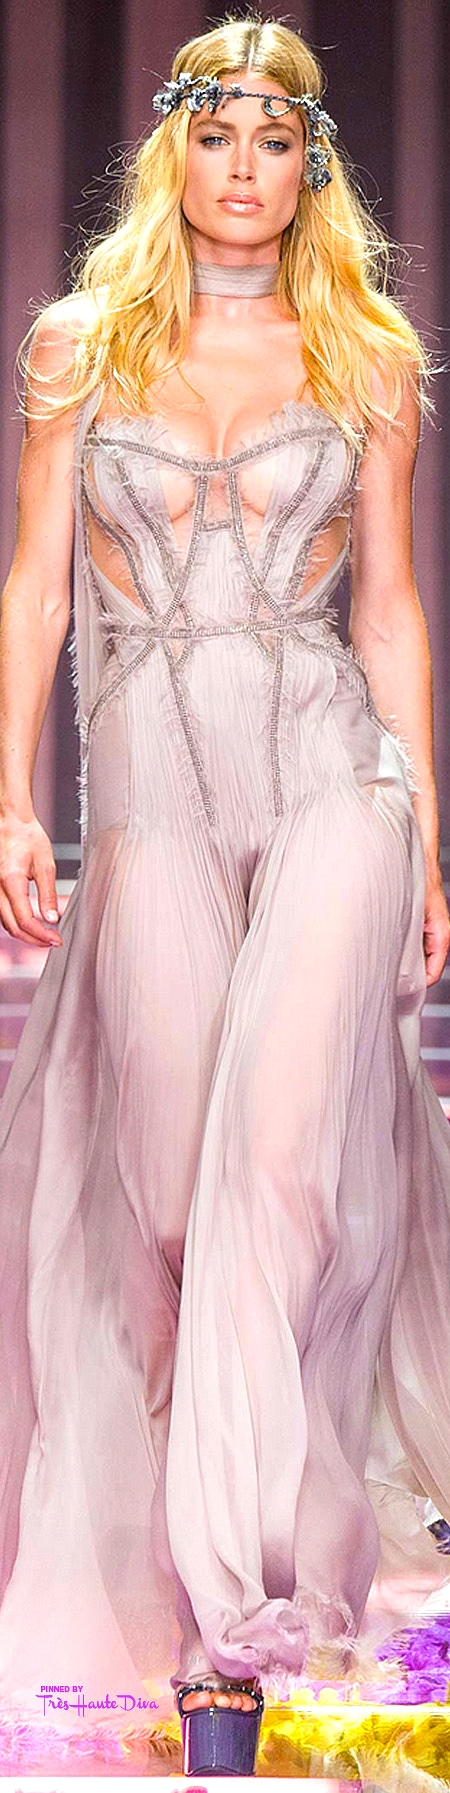 Atelier Versace Fall/Winter 2015-16